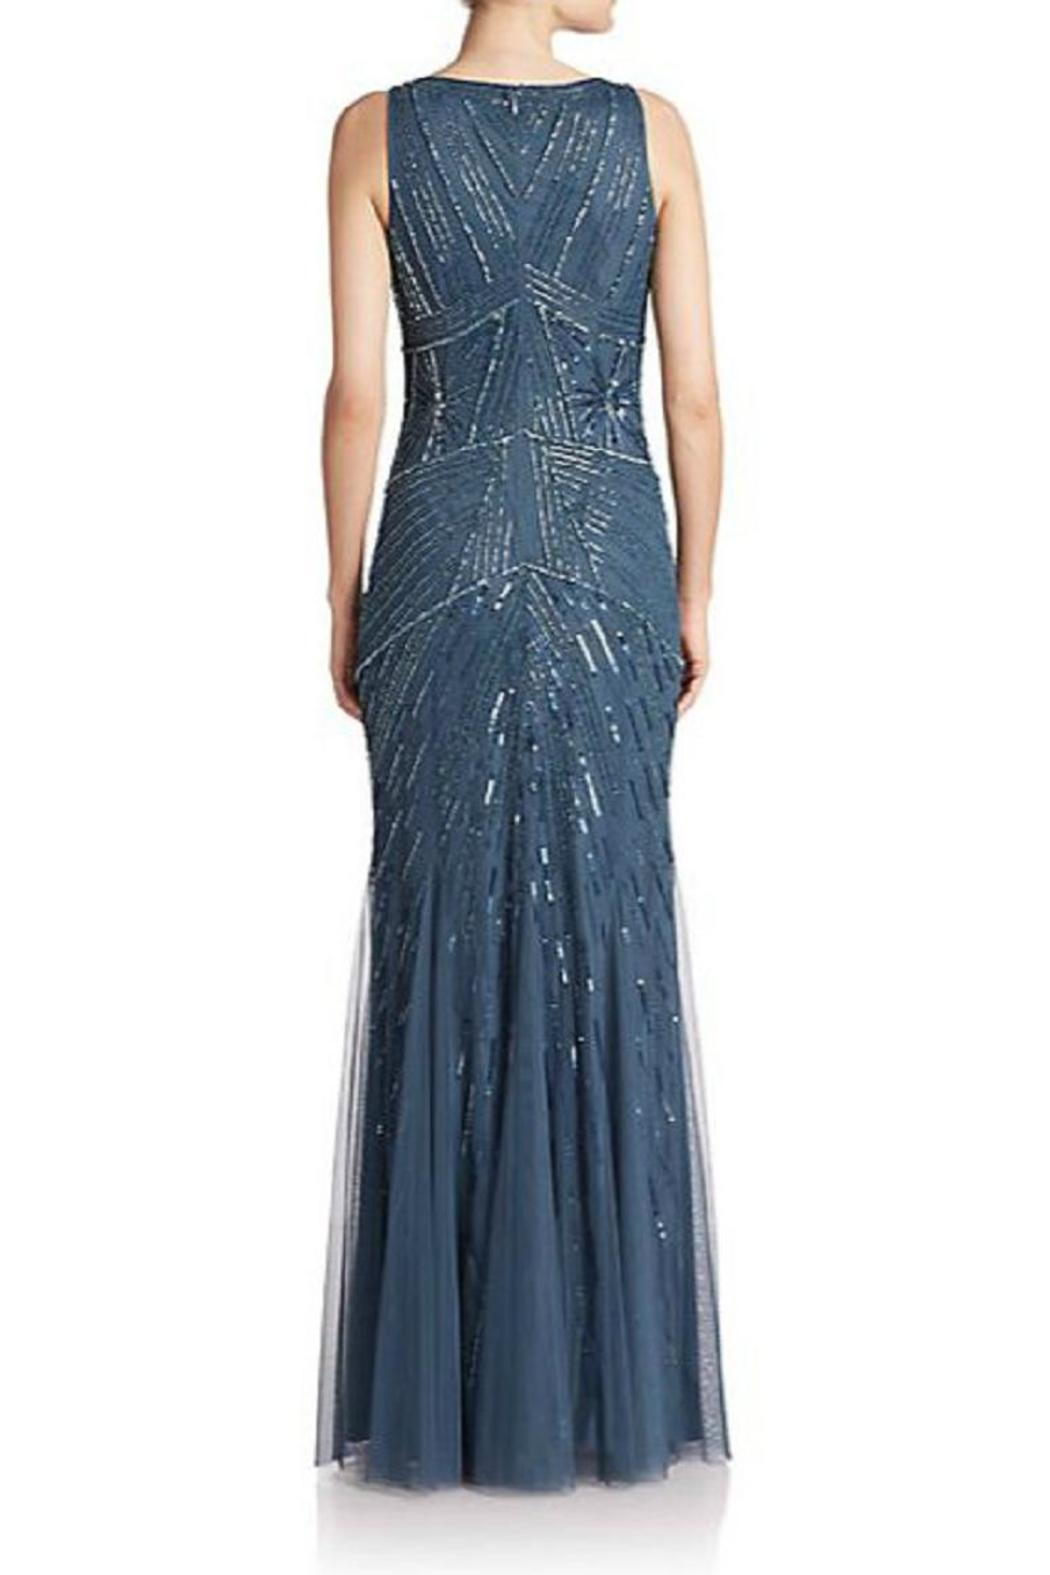 Aidan Mattox Embellished Godet Gown From New Jersey By